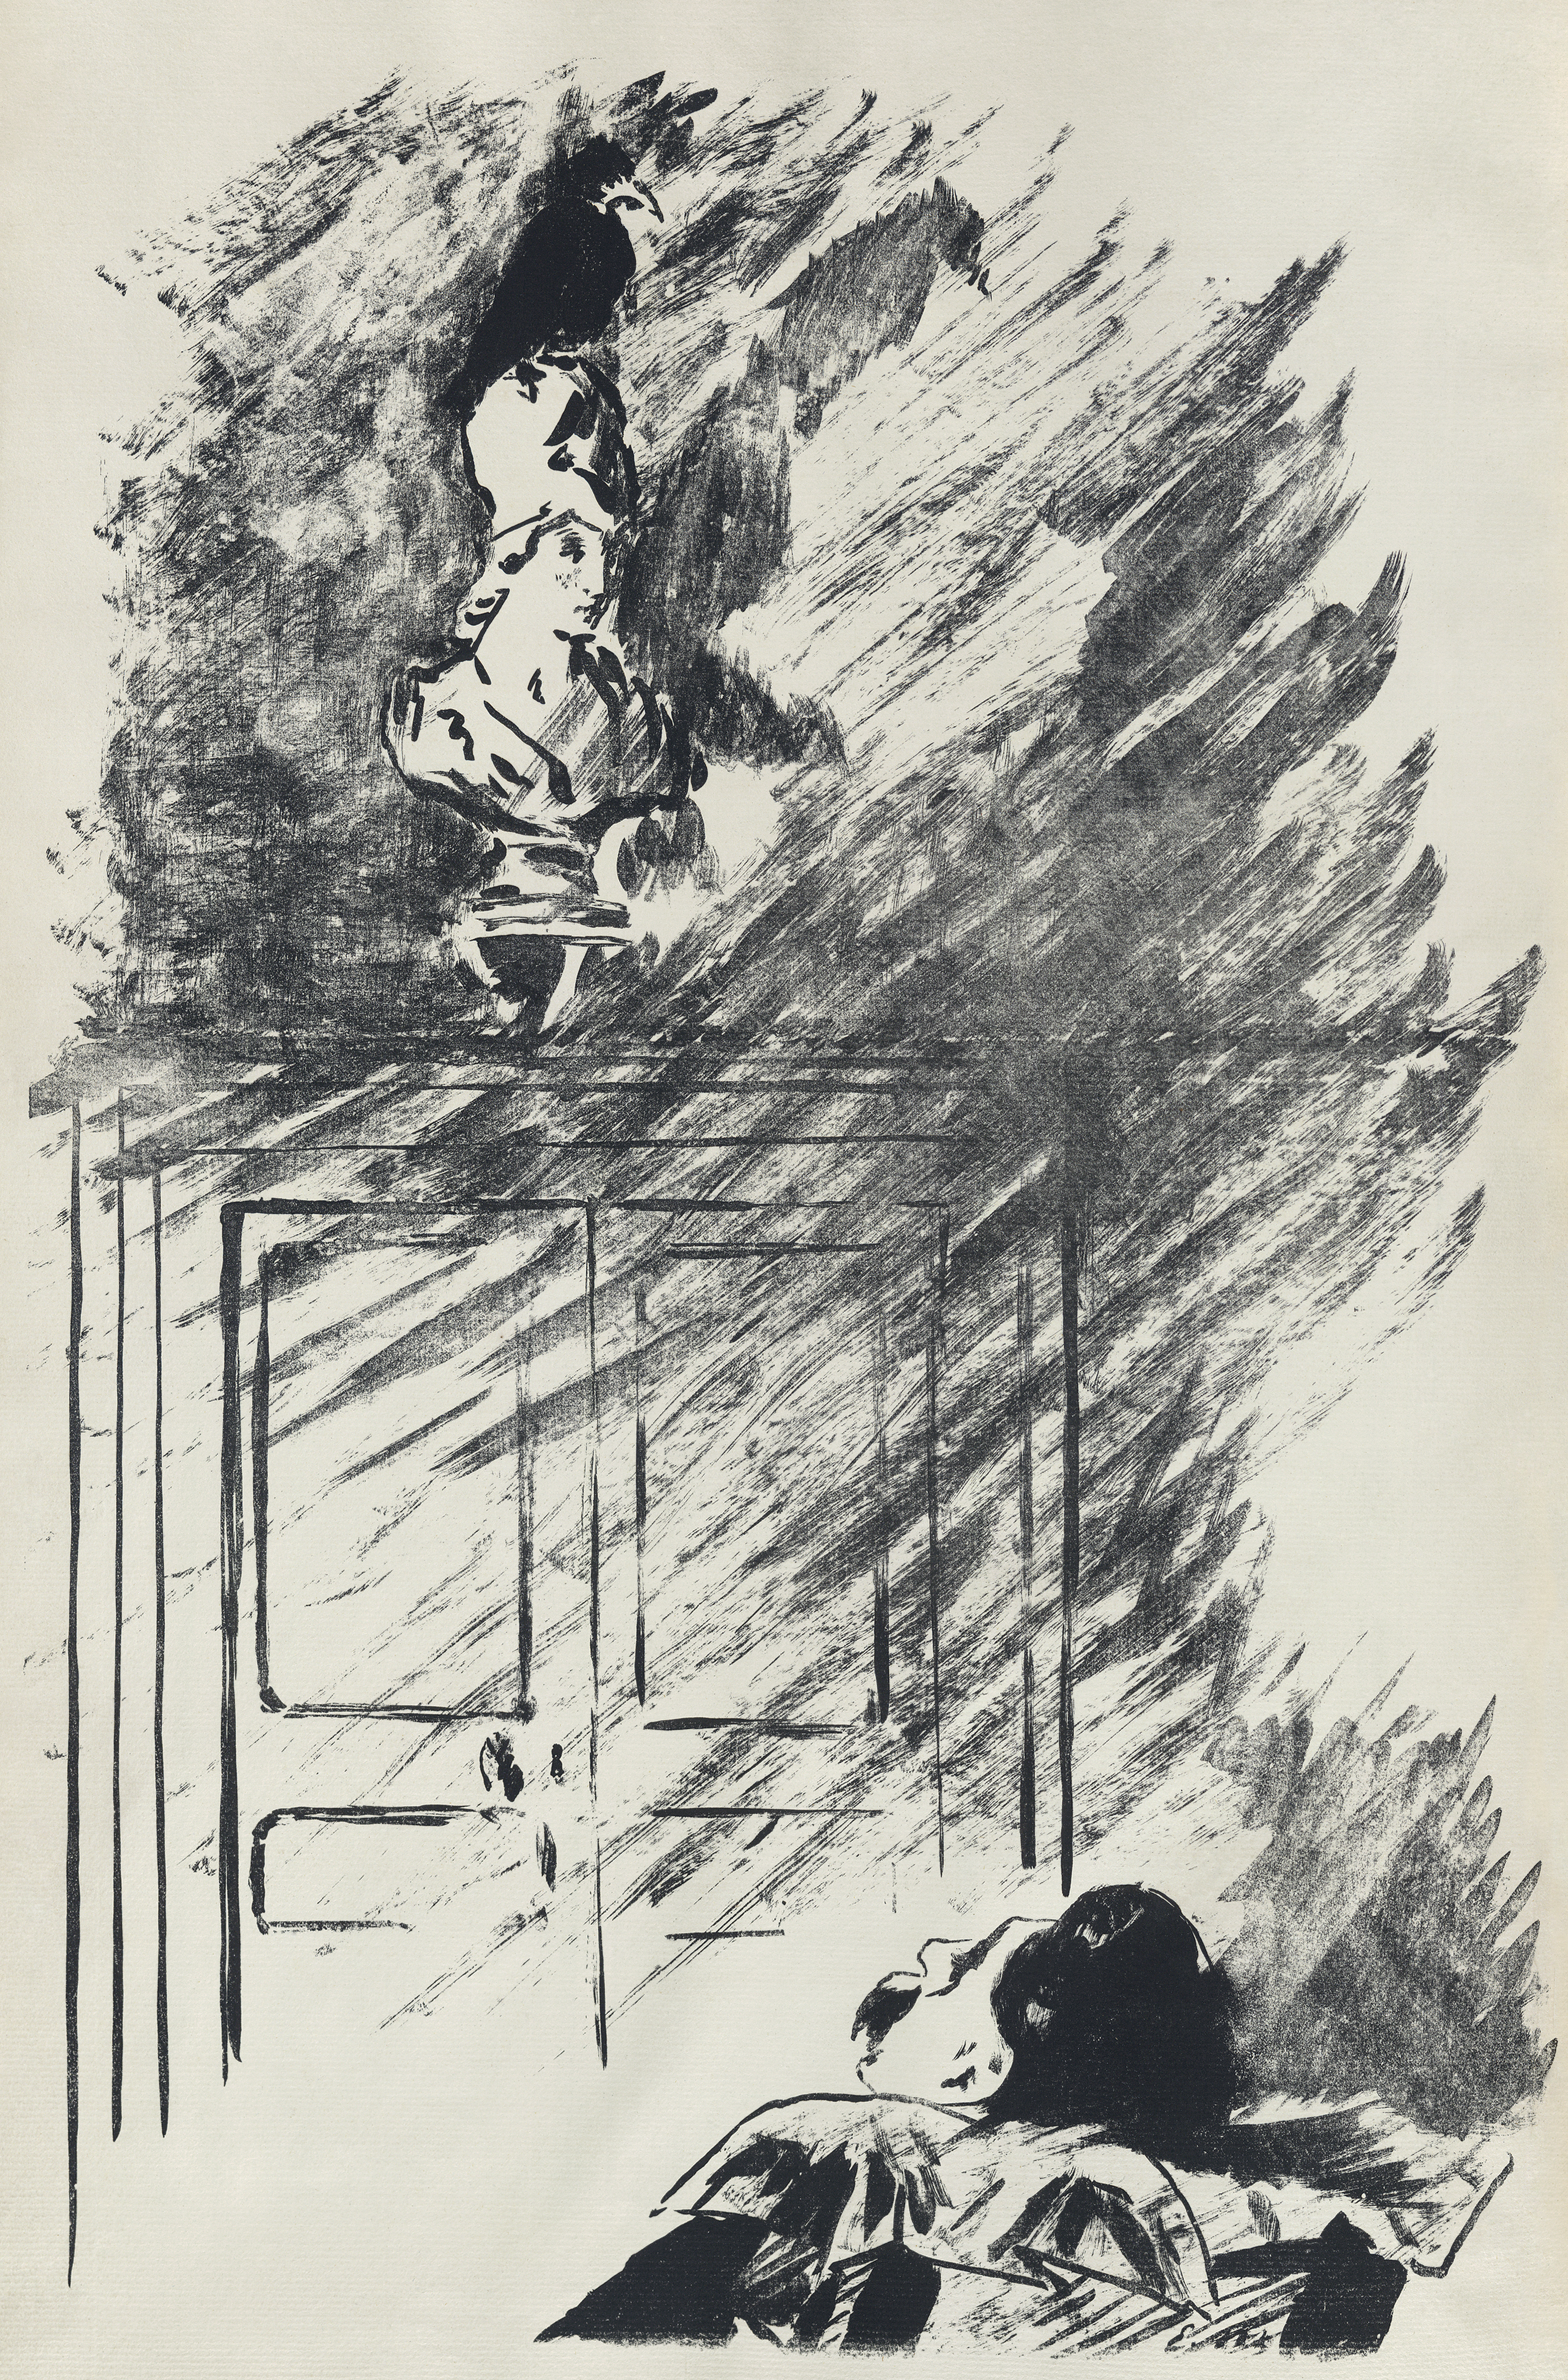 Illustration by French impressionist Édouard Manet for the Stéphane Mallarmé translation of